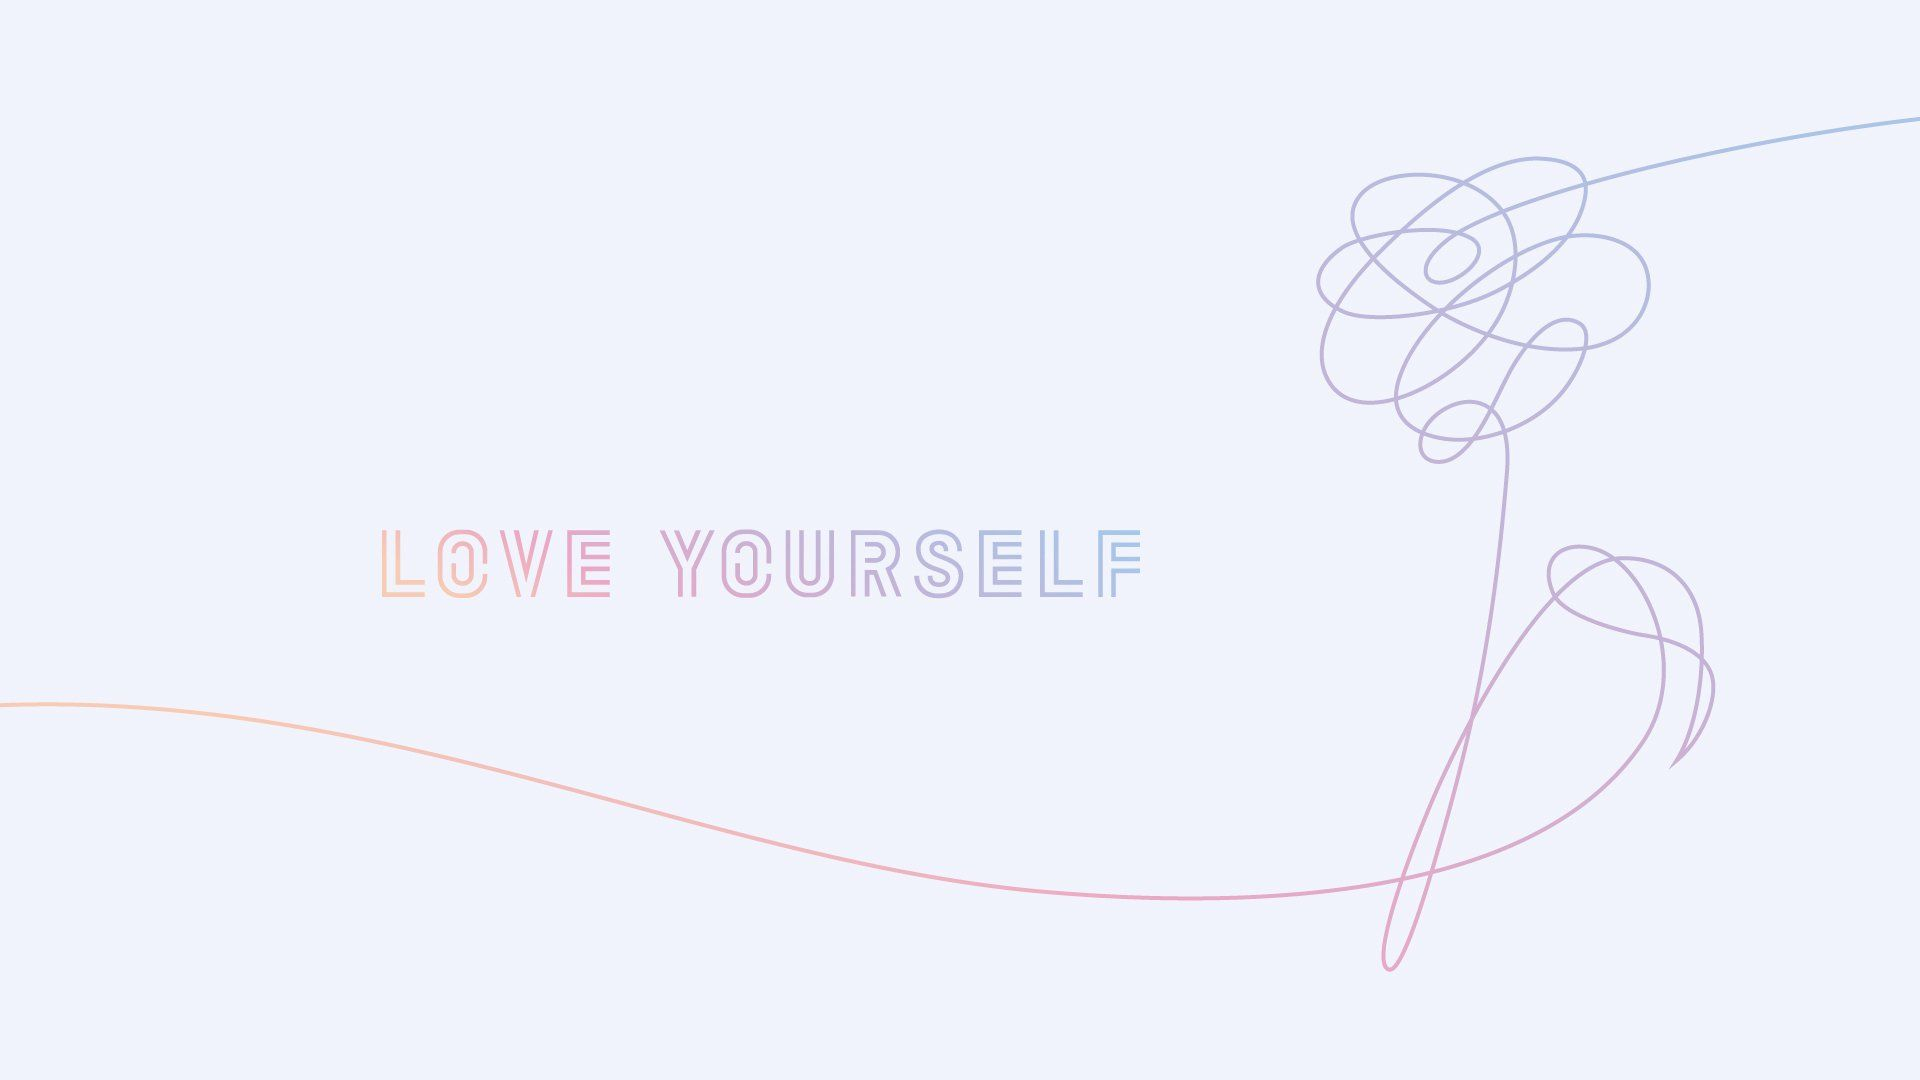 Pc Wallpapers My Creation For New Bts Logo Wallpaper Pc 1920x1080 Wallpaper World Bts Wallpaper Desktop Bts Laptop Wallpaper Bts Wallpaper